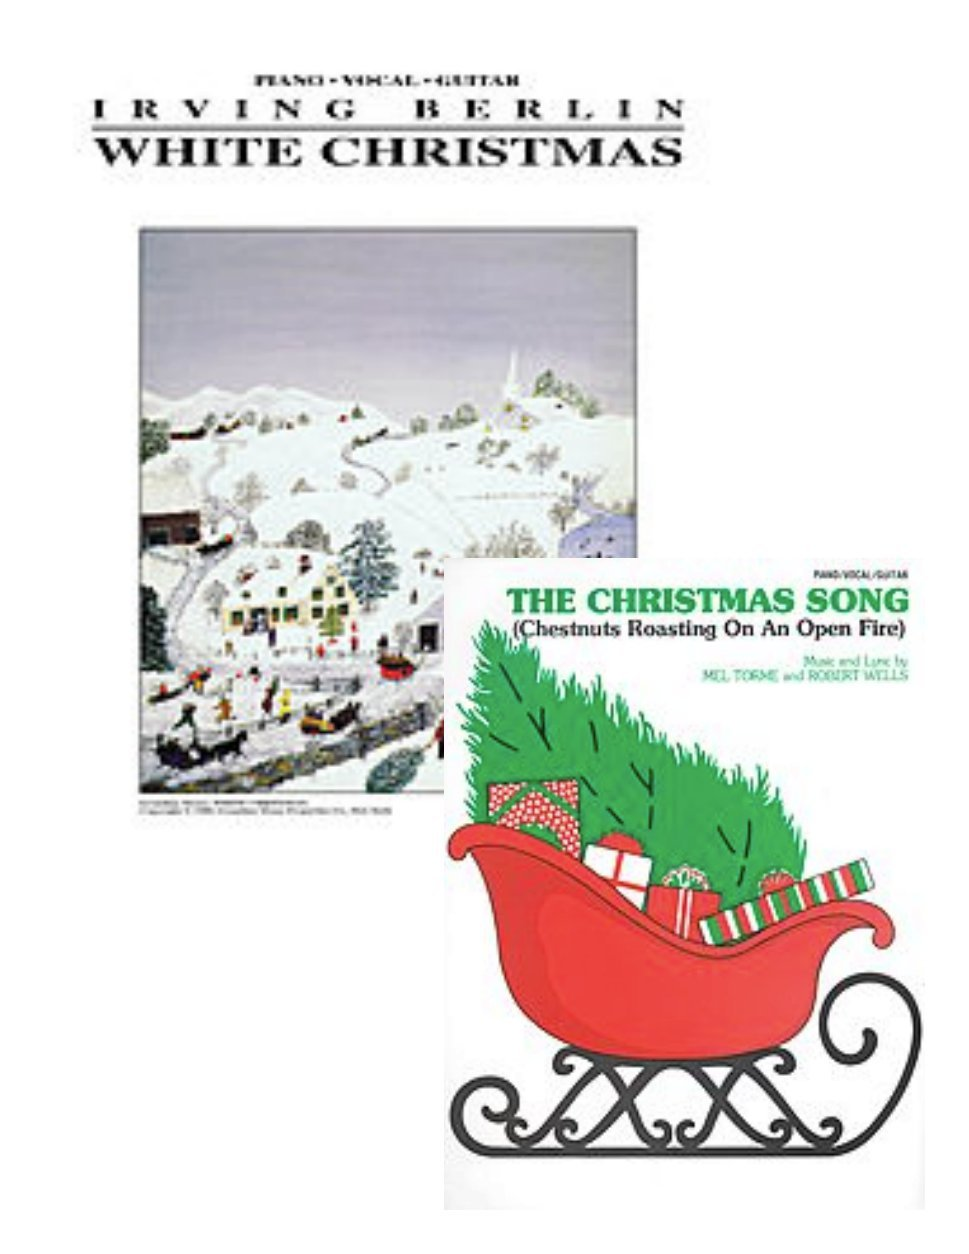 White Christmas for Piano/Vocal/Guitar - Difficulty: easy-medium AND ...